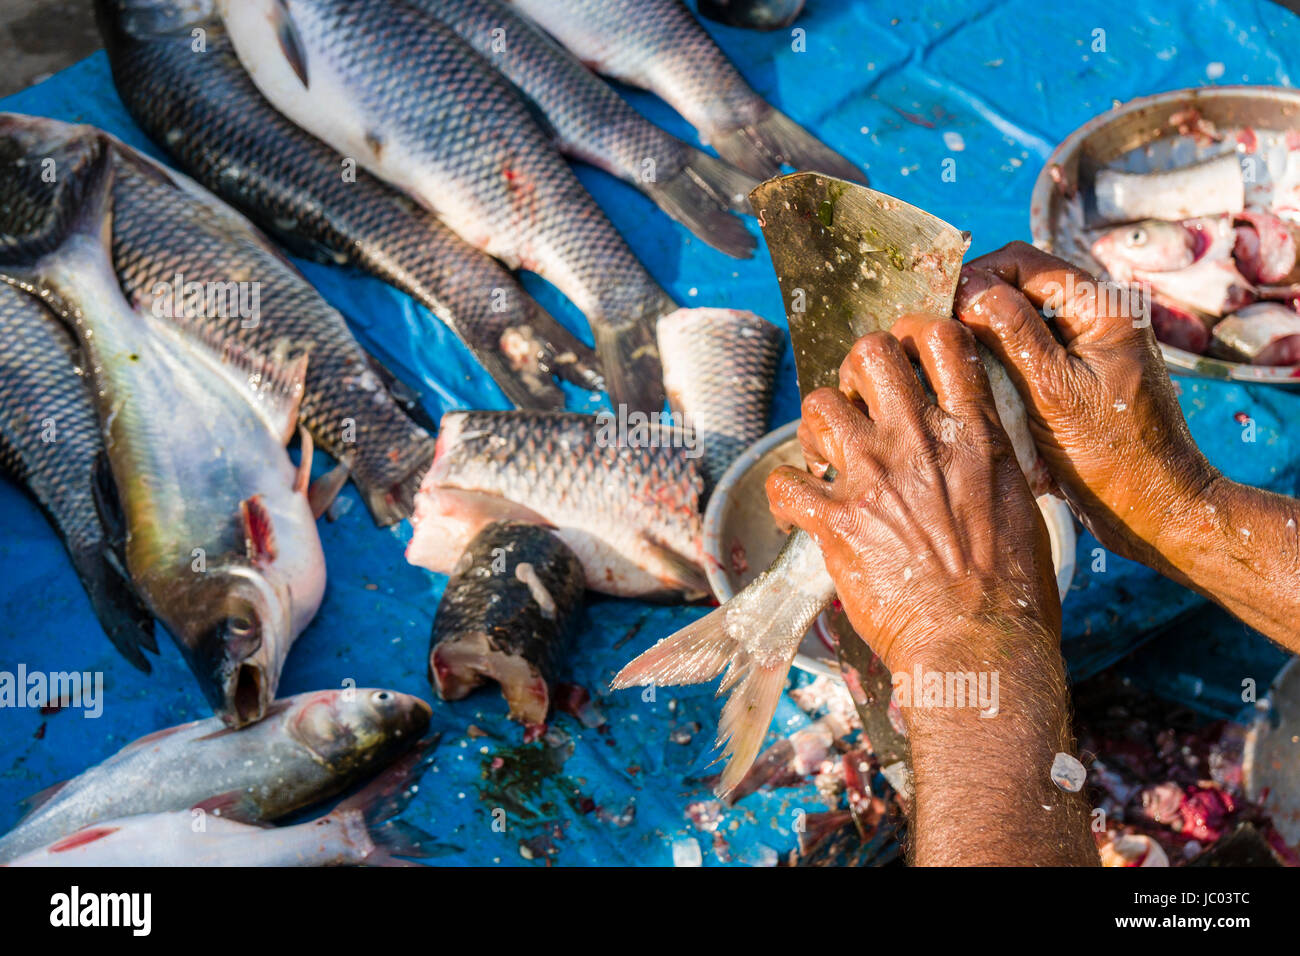 A man is preparing and selling fish on a busy vegetable market street in the suburb New Market - Stock Image